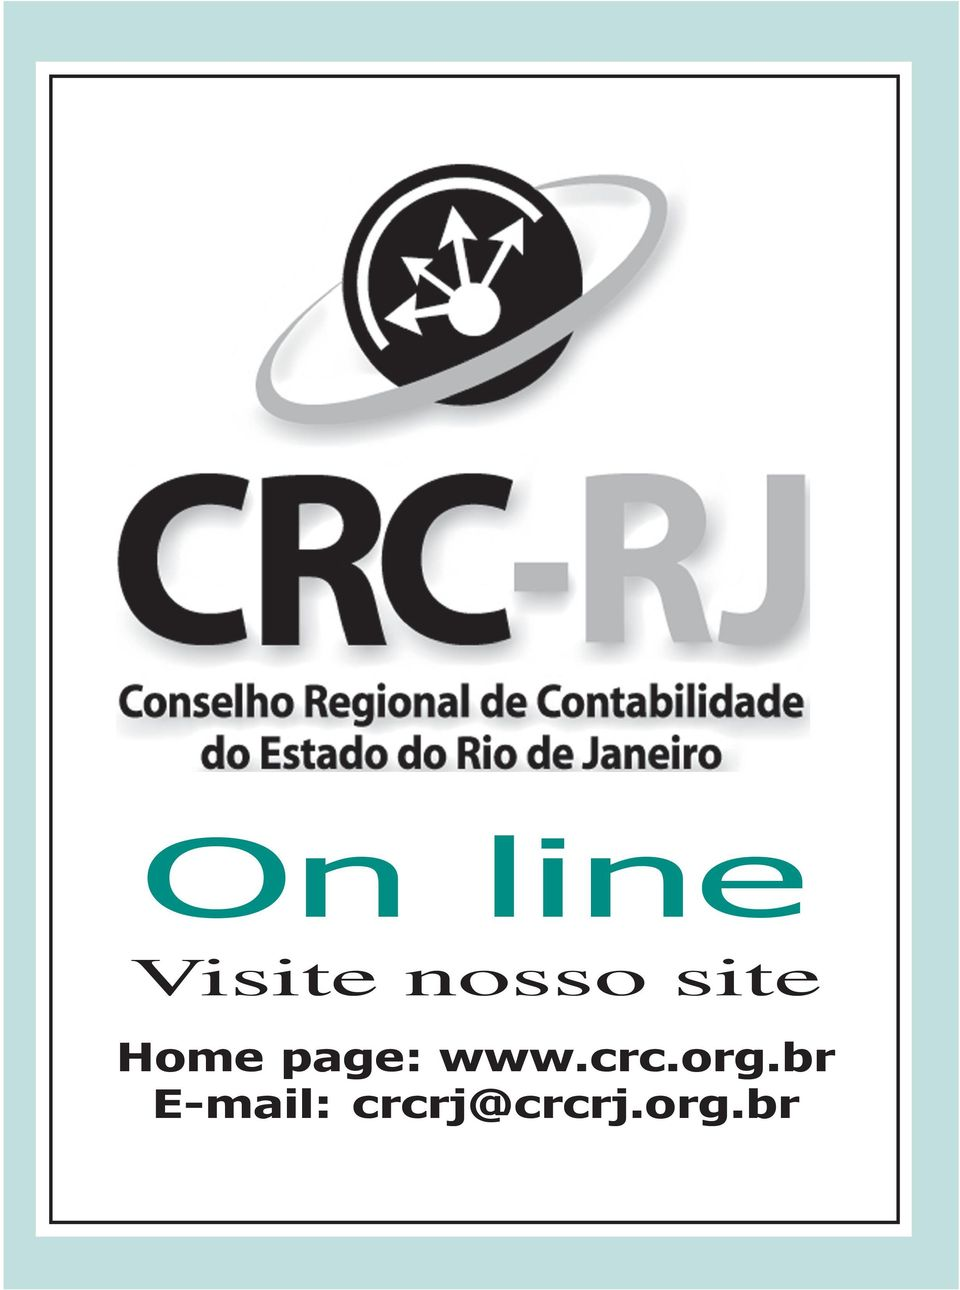 page: www.crc.org.